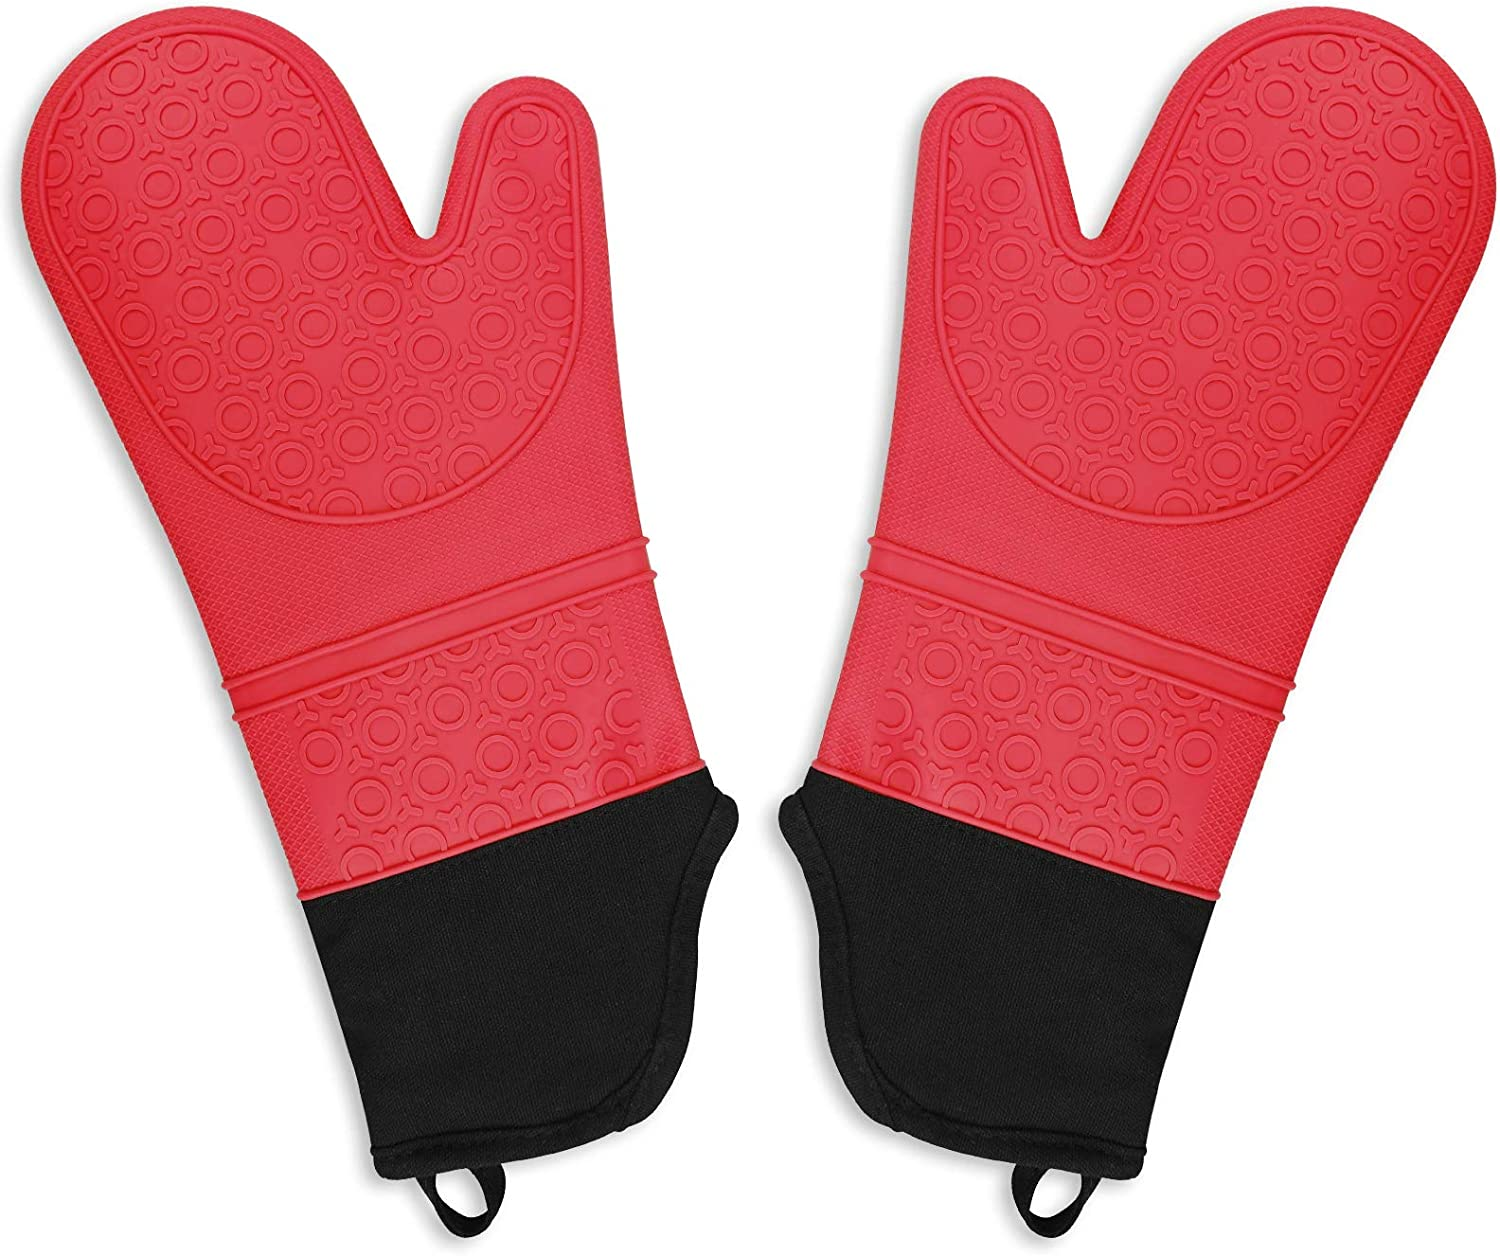 1 Pair of Non Slip Extra Long Professional Baking Oven Gloves for Cooking Baking Grilling Machine Washable Blue Seniny Silicone Protective Oven Mitts 500 F Heat Resistant with Waterproof